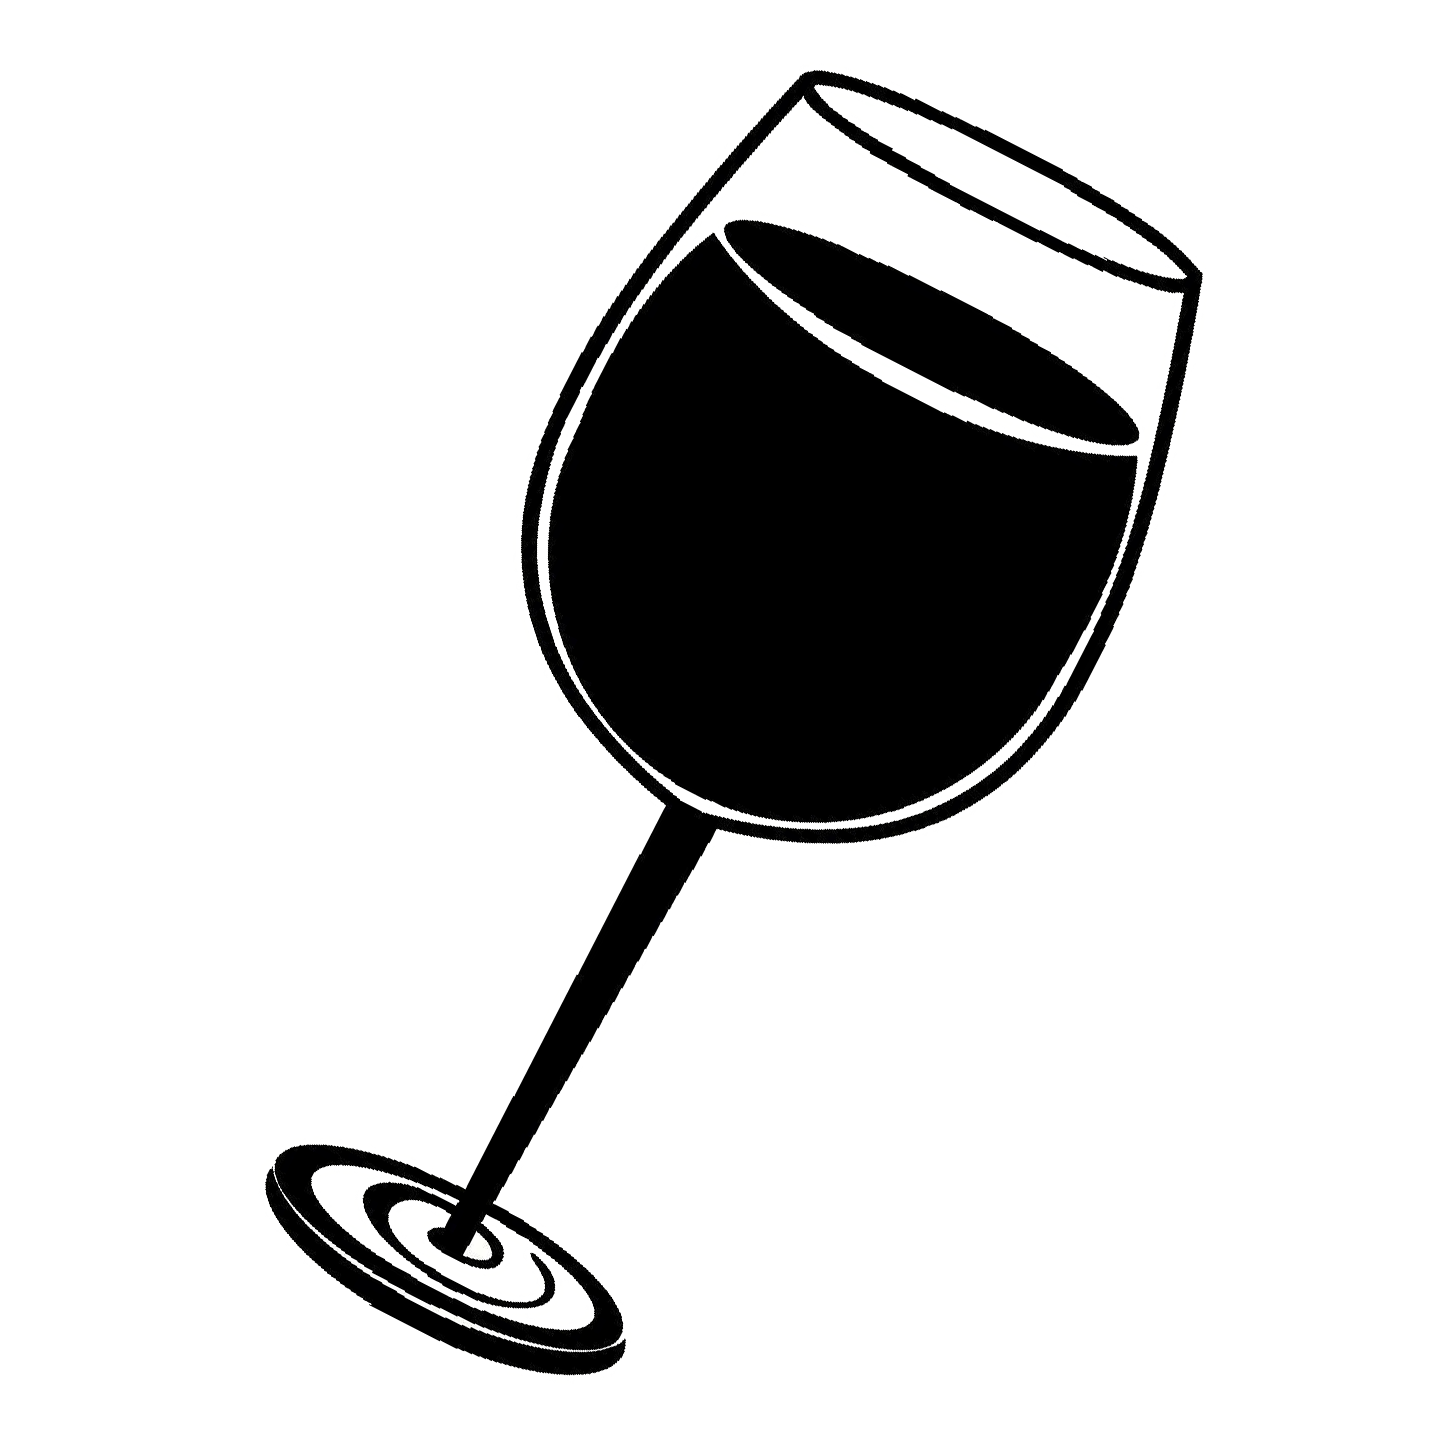 Black And White Wine Glass Png & Free Black And White Wine.